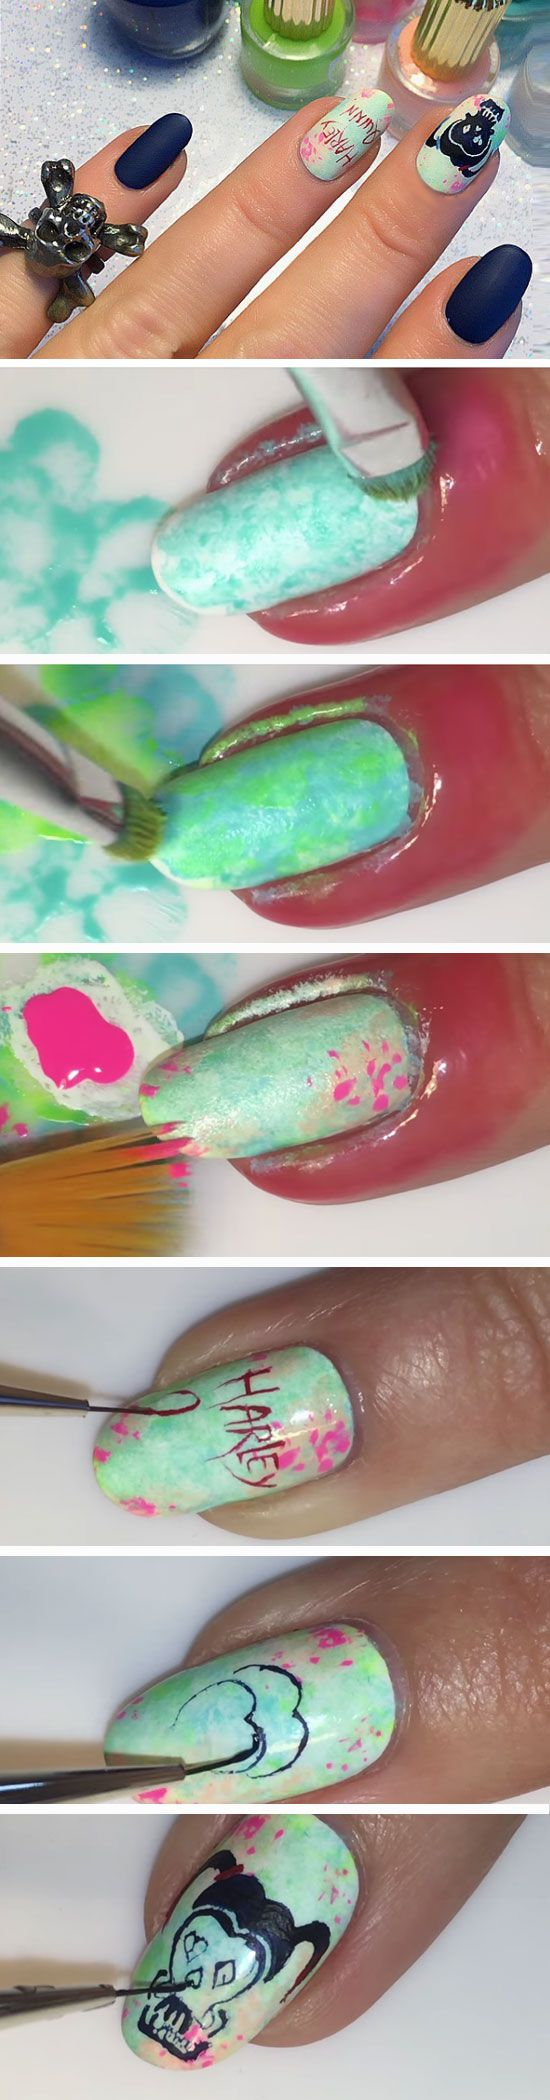 Harley Quinn Suicide Squad | 23 Easy Halloween Nail Art Ideas for Teens that are totally spooktastic!